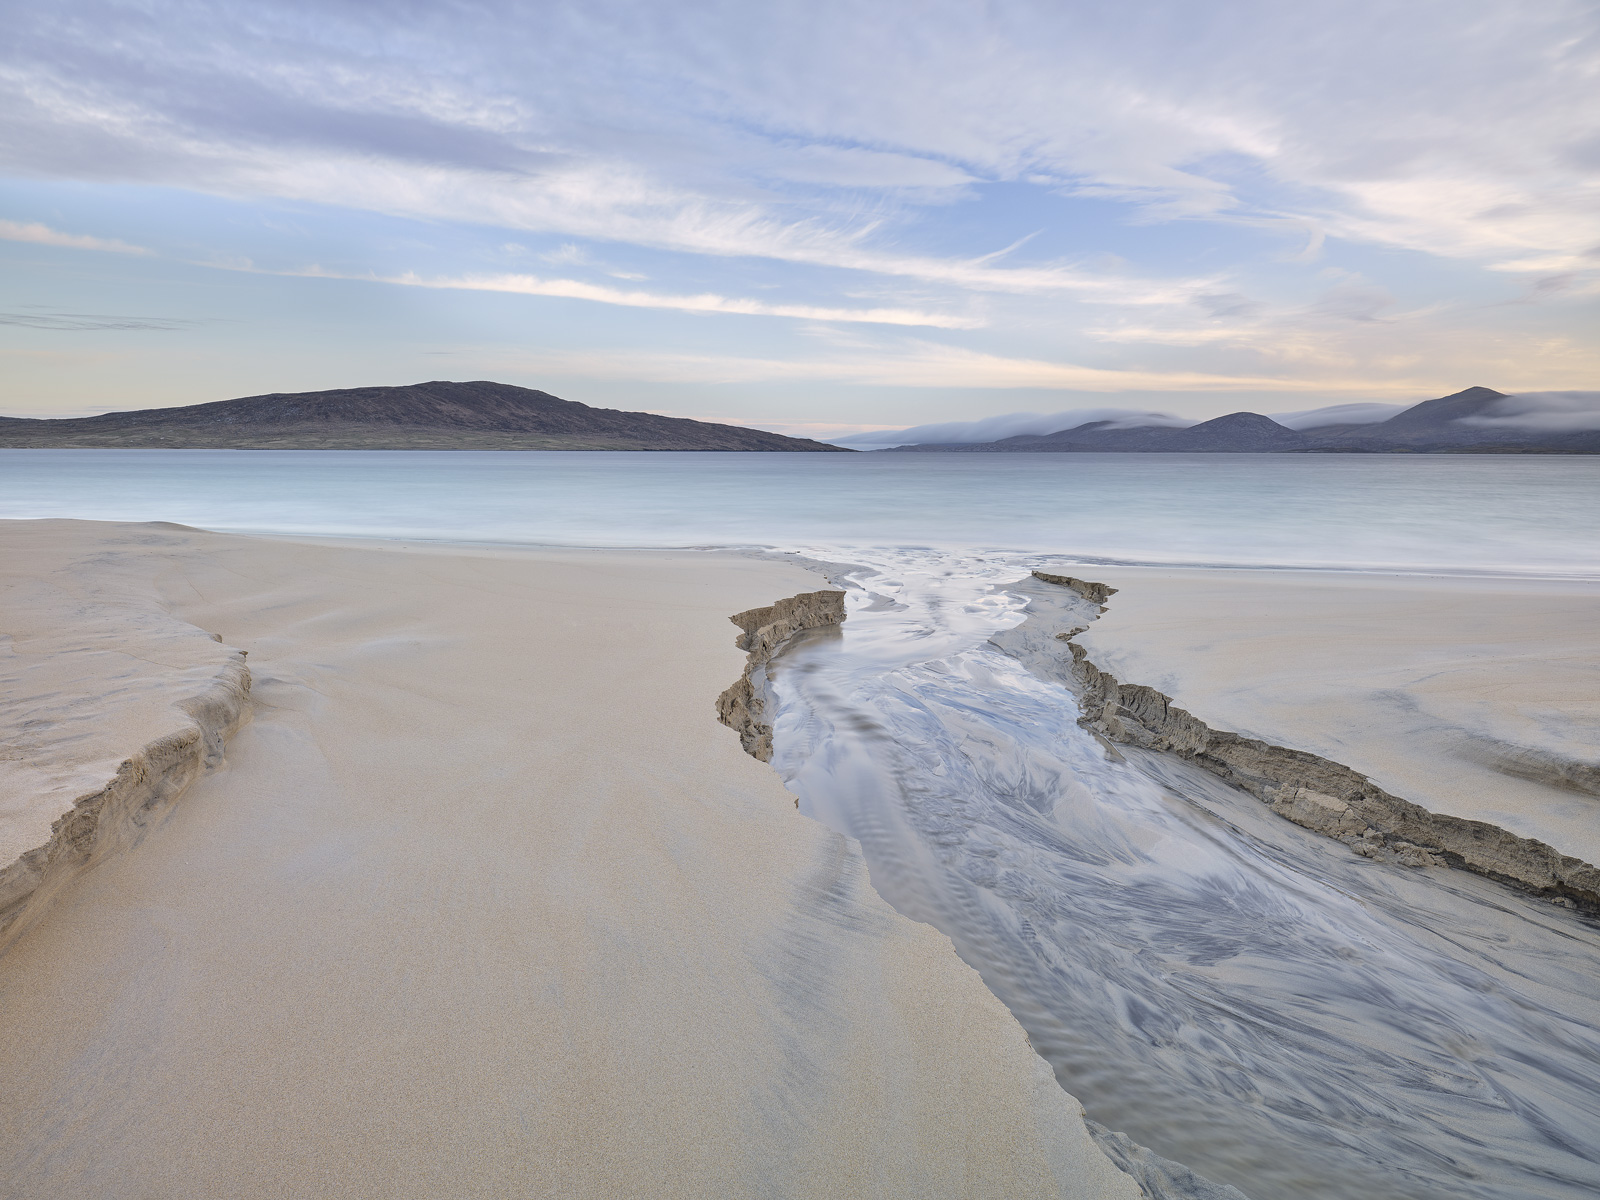 Sand carving on the immaculate and unblemished beach at Traigh Rosamol on Harris.